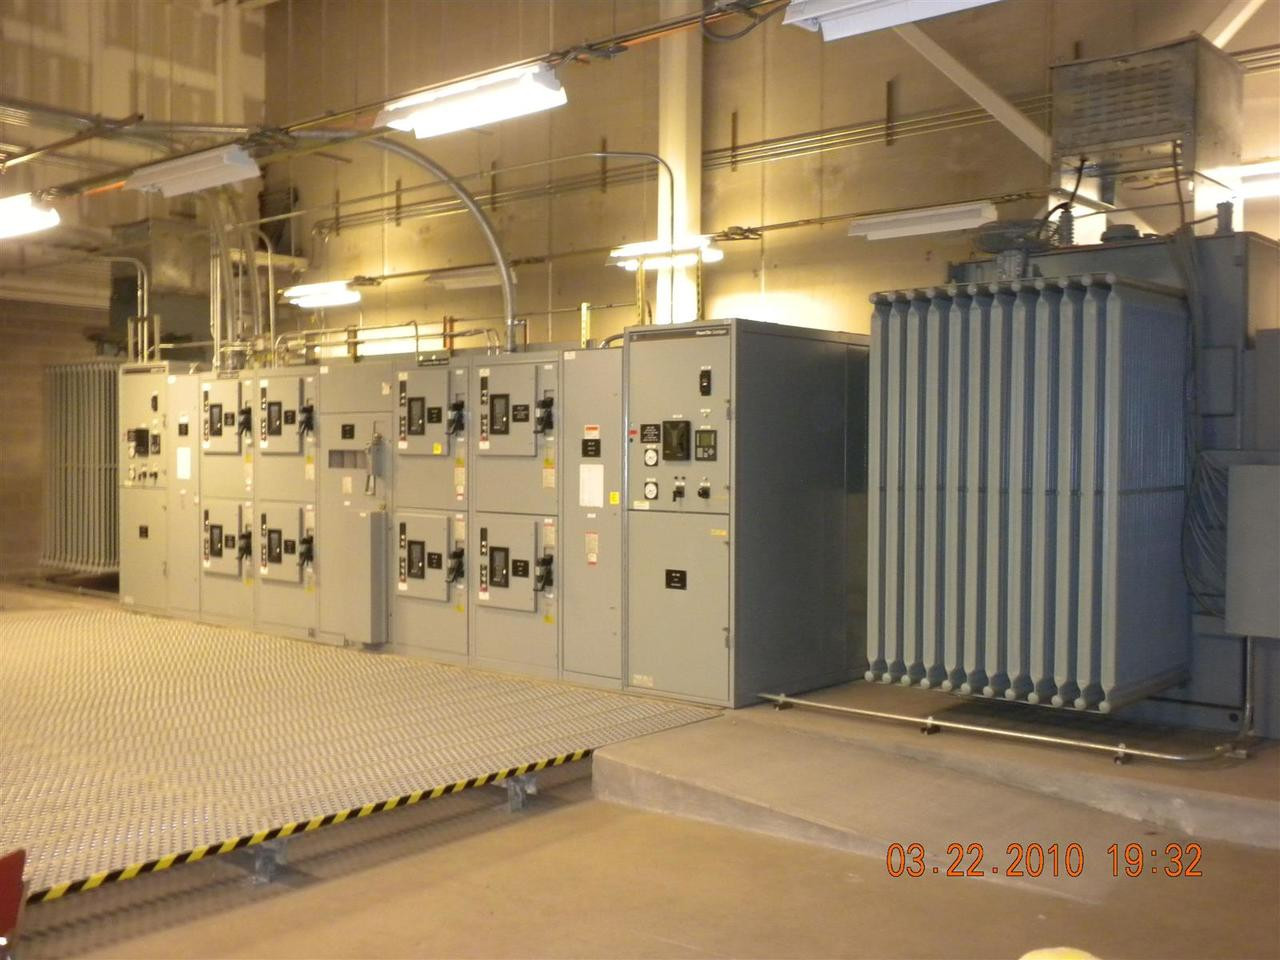 ge industrial systems 2500kva double ended substation electrical switchgear 1247  [ 1280 x 960 Pixel ]